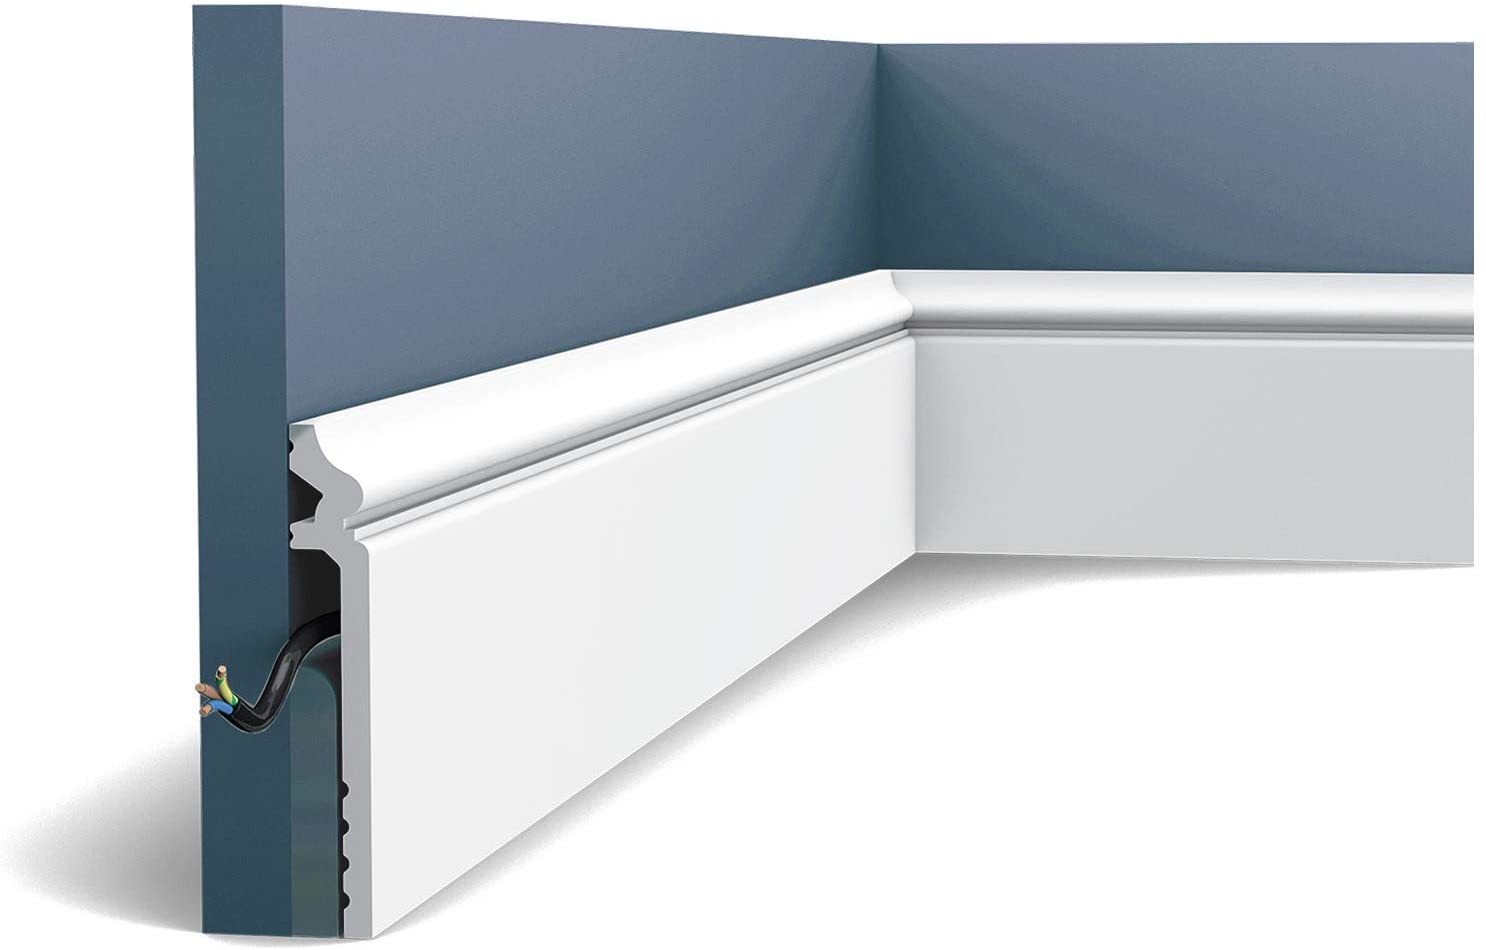 Skirting Orac Decor SX186 LUXXUS Contour Cover Skirting Decorative Moulding Classic Look White 2m